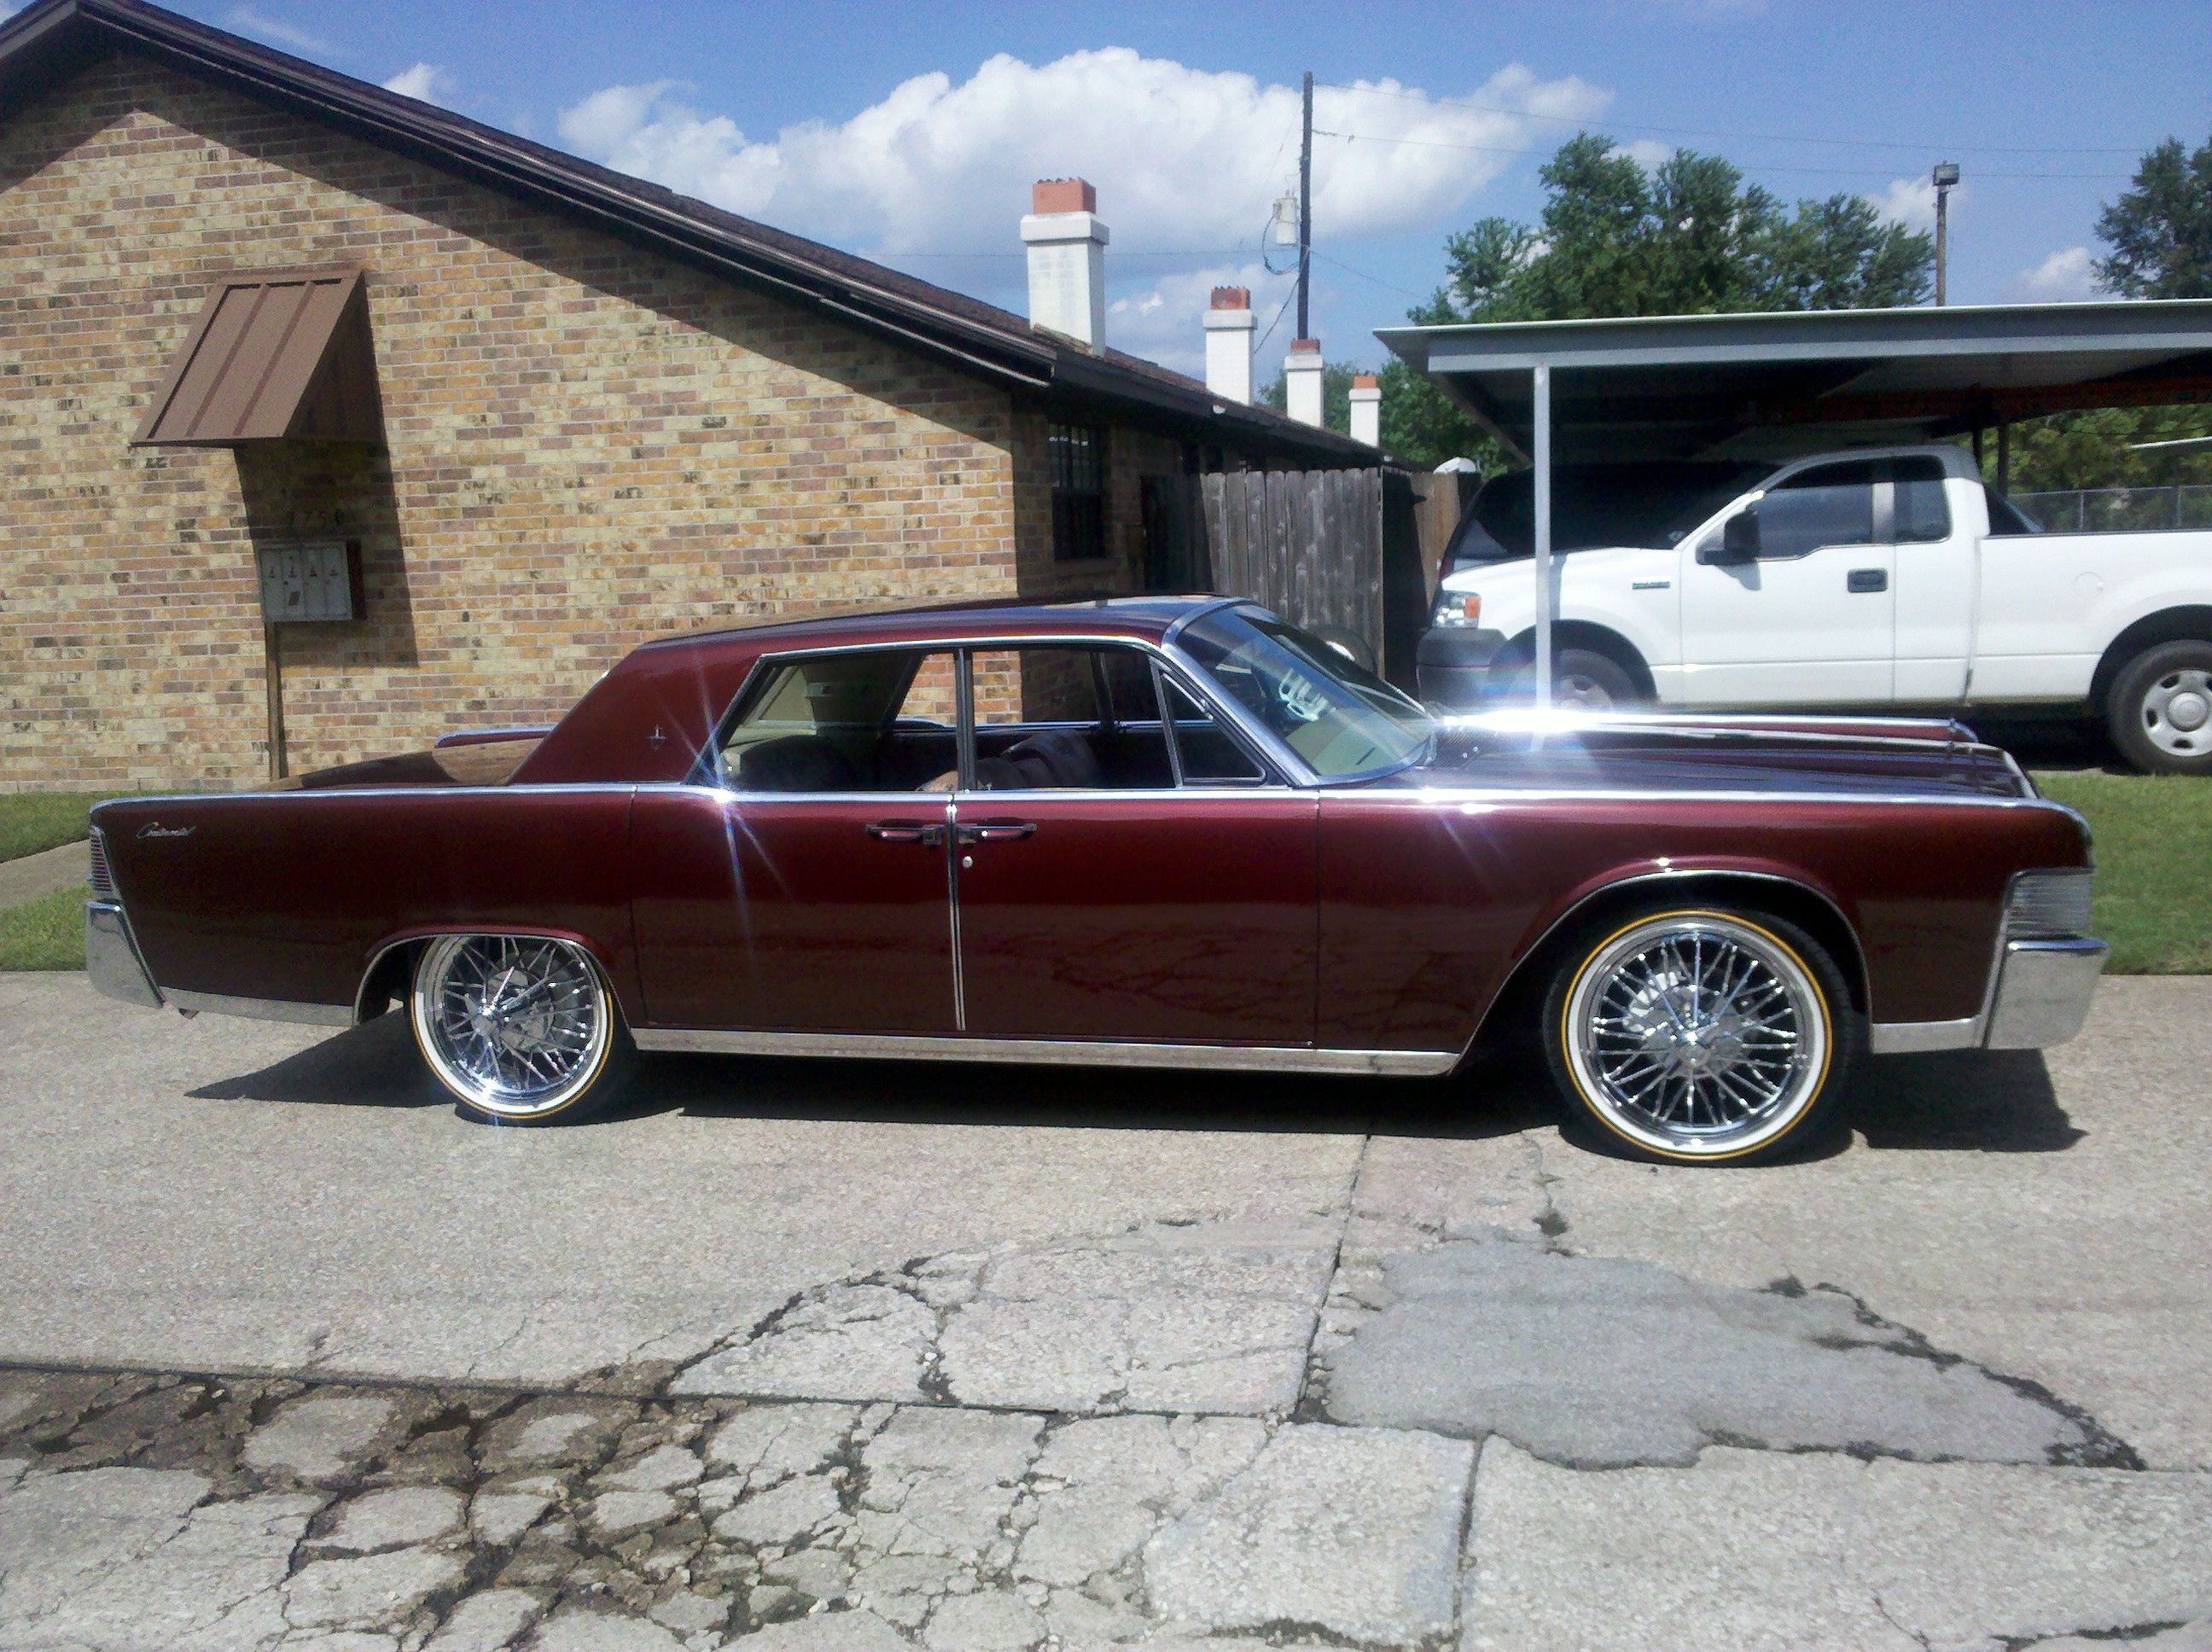 Hdac77 S 1965 Lincoln Continental In Beaumont Tx Lincoln Continental Lincoln Cars Donk Cars